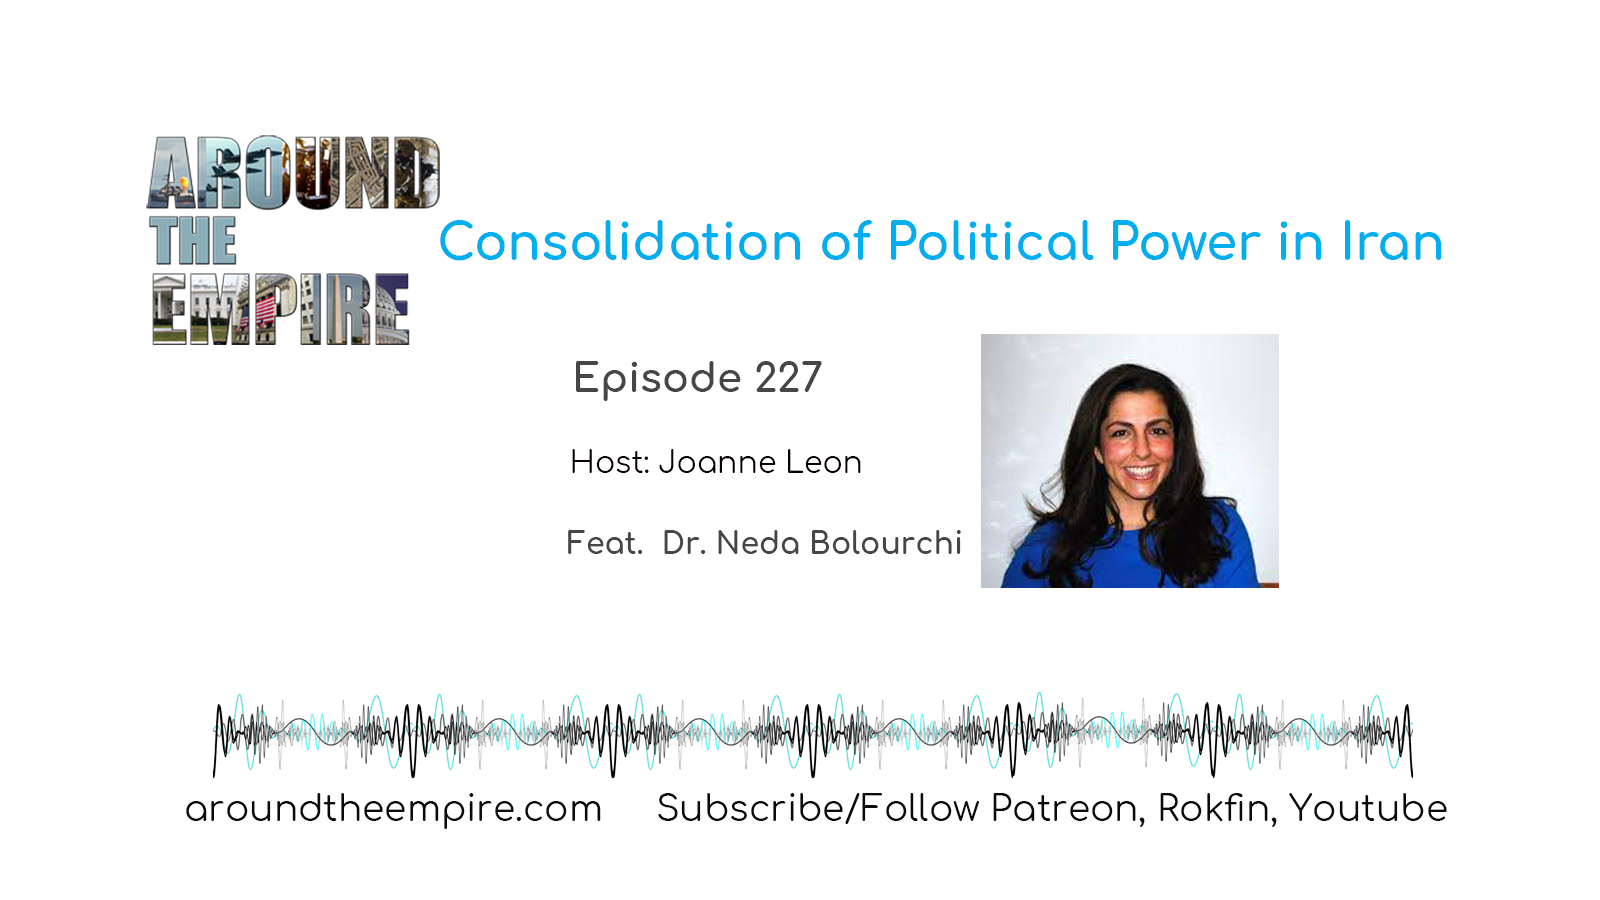 Ep 227 Consolidation of Political Power in Iran feat Neda Bolourchi